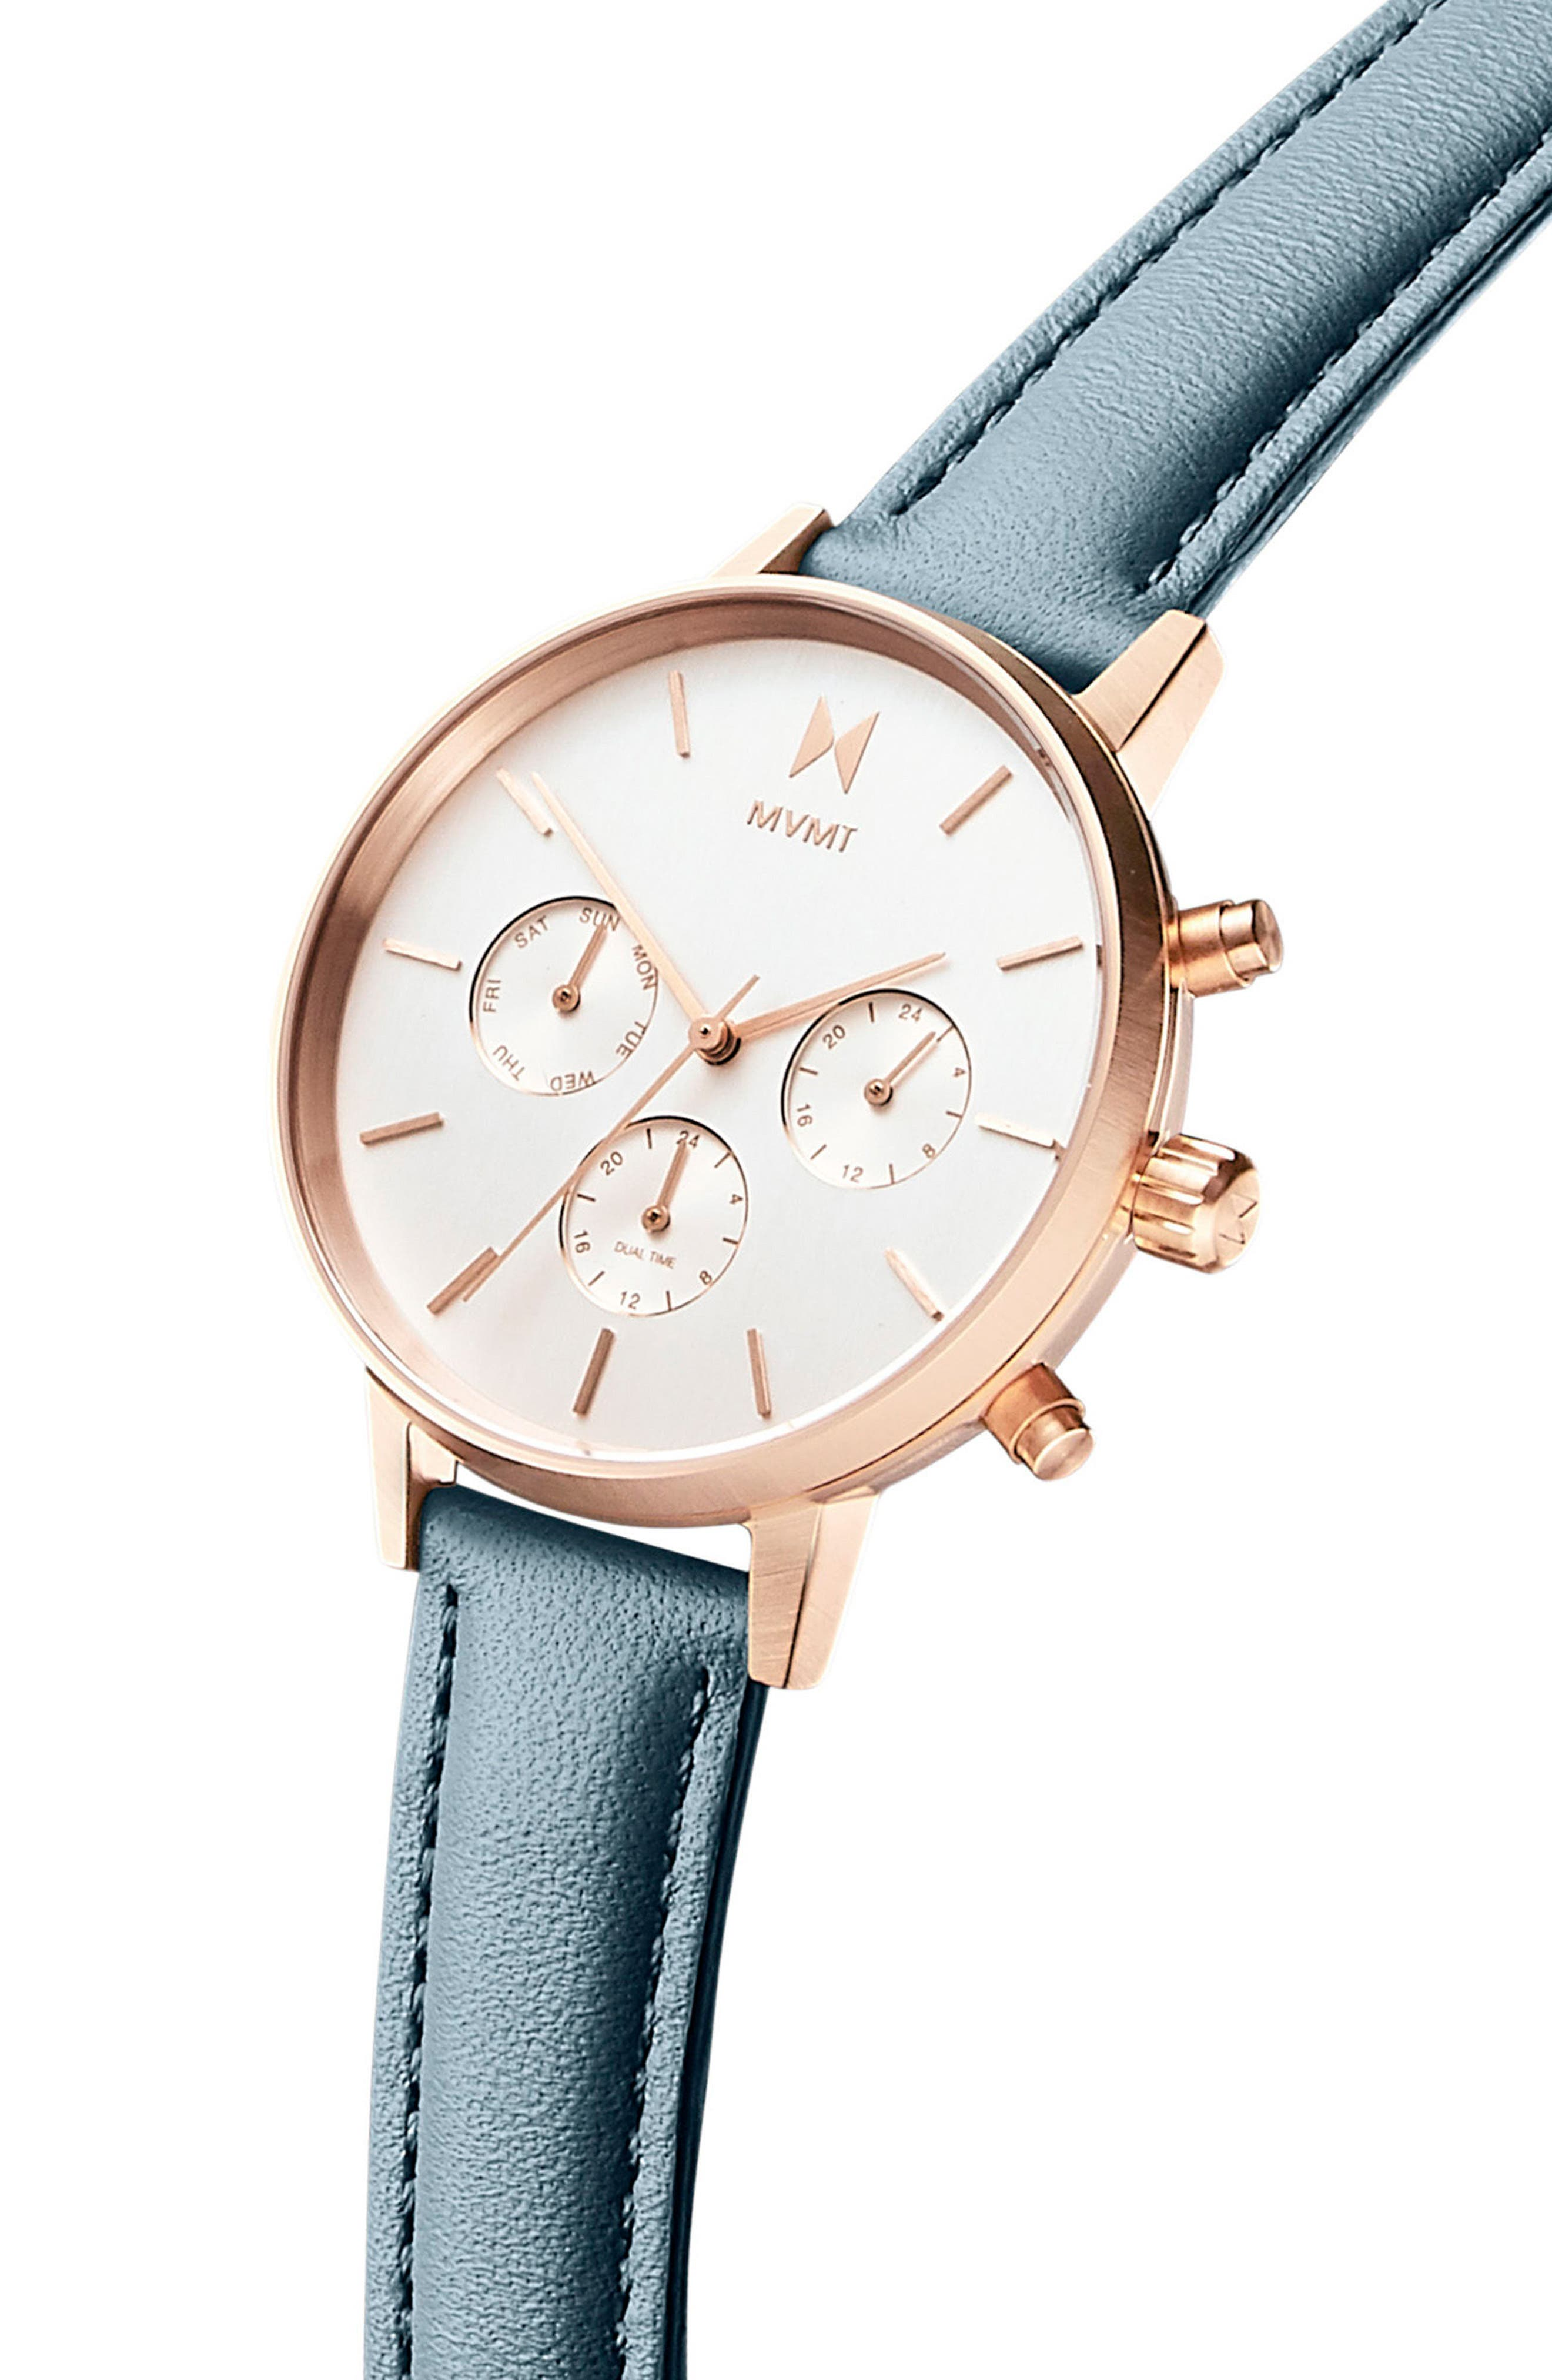 Nova Chronograph Leather Strap Watch, 38mm,                             Alternate thumbnail 3, color,                             Slate/ Beige/ Rose Gold